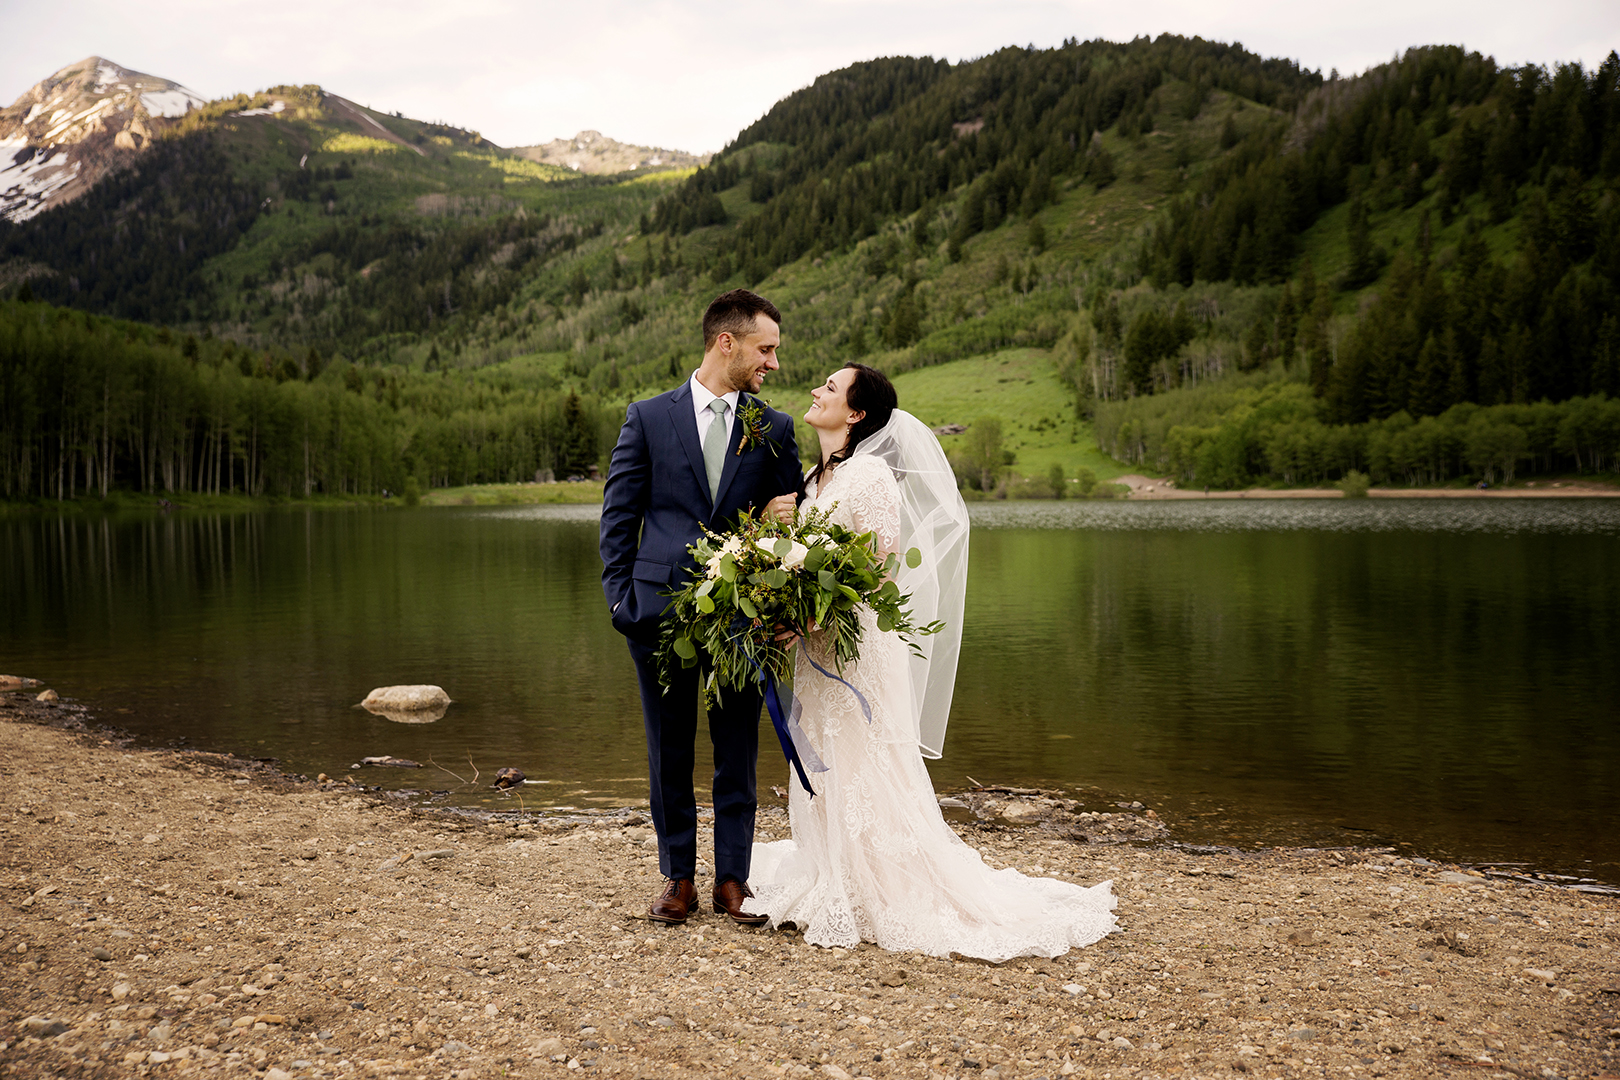 Groom and Bride Formal Wedding Photo by Lake